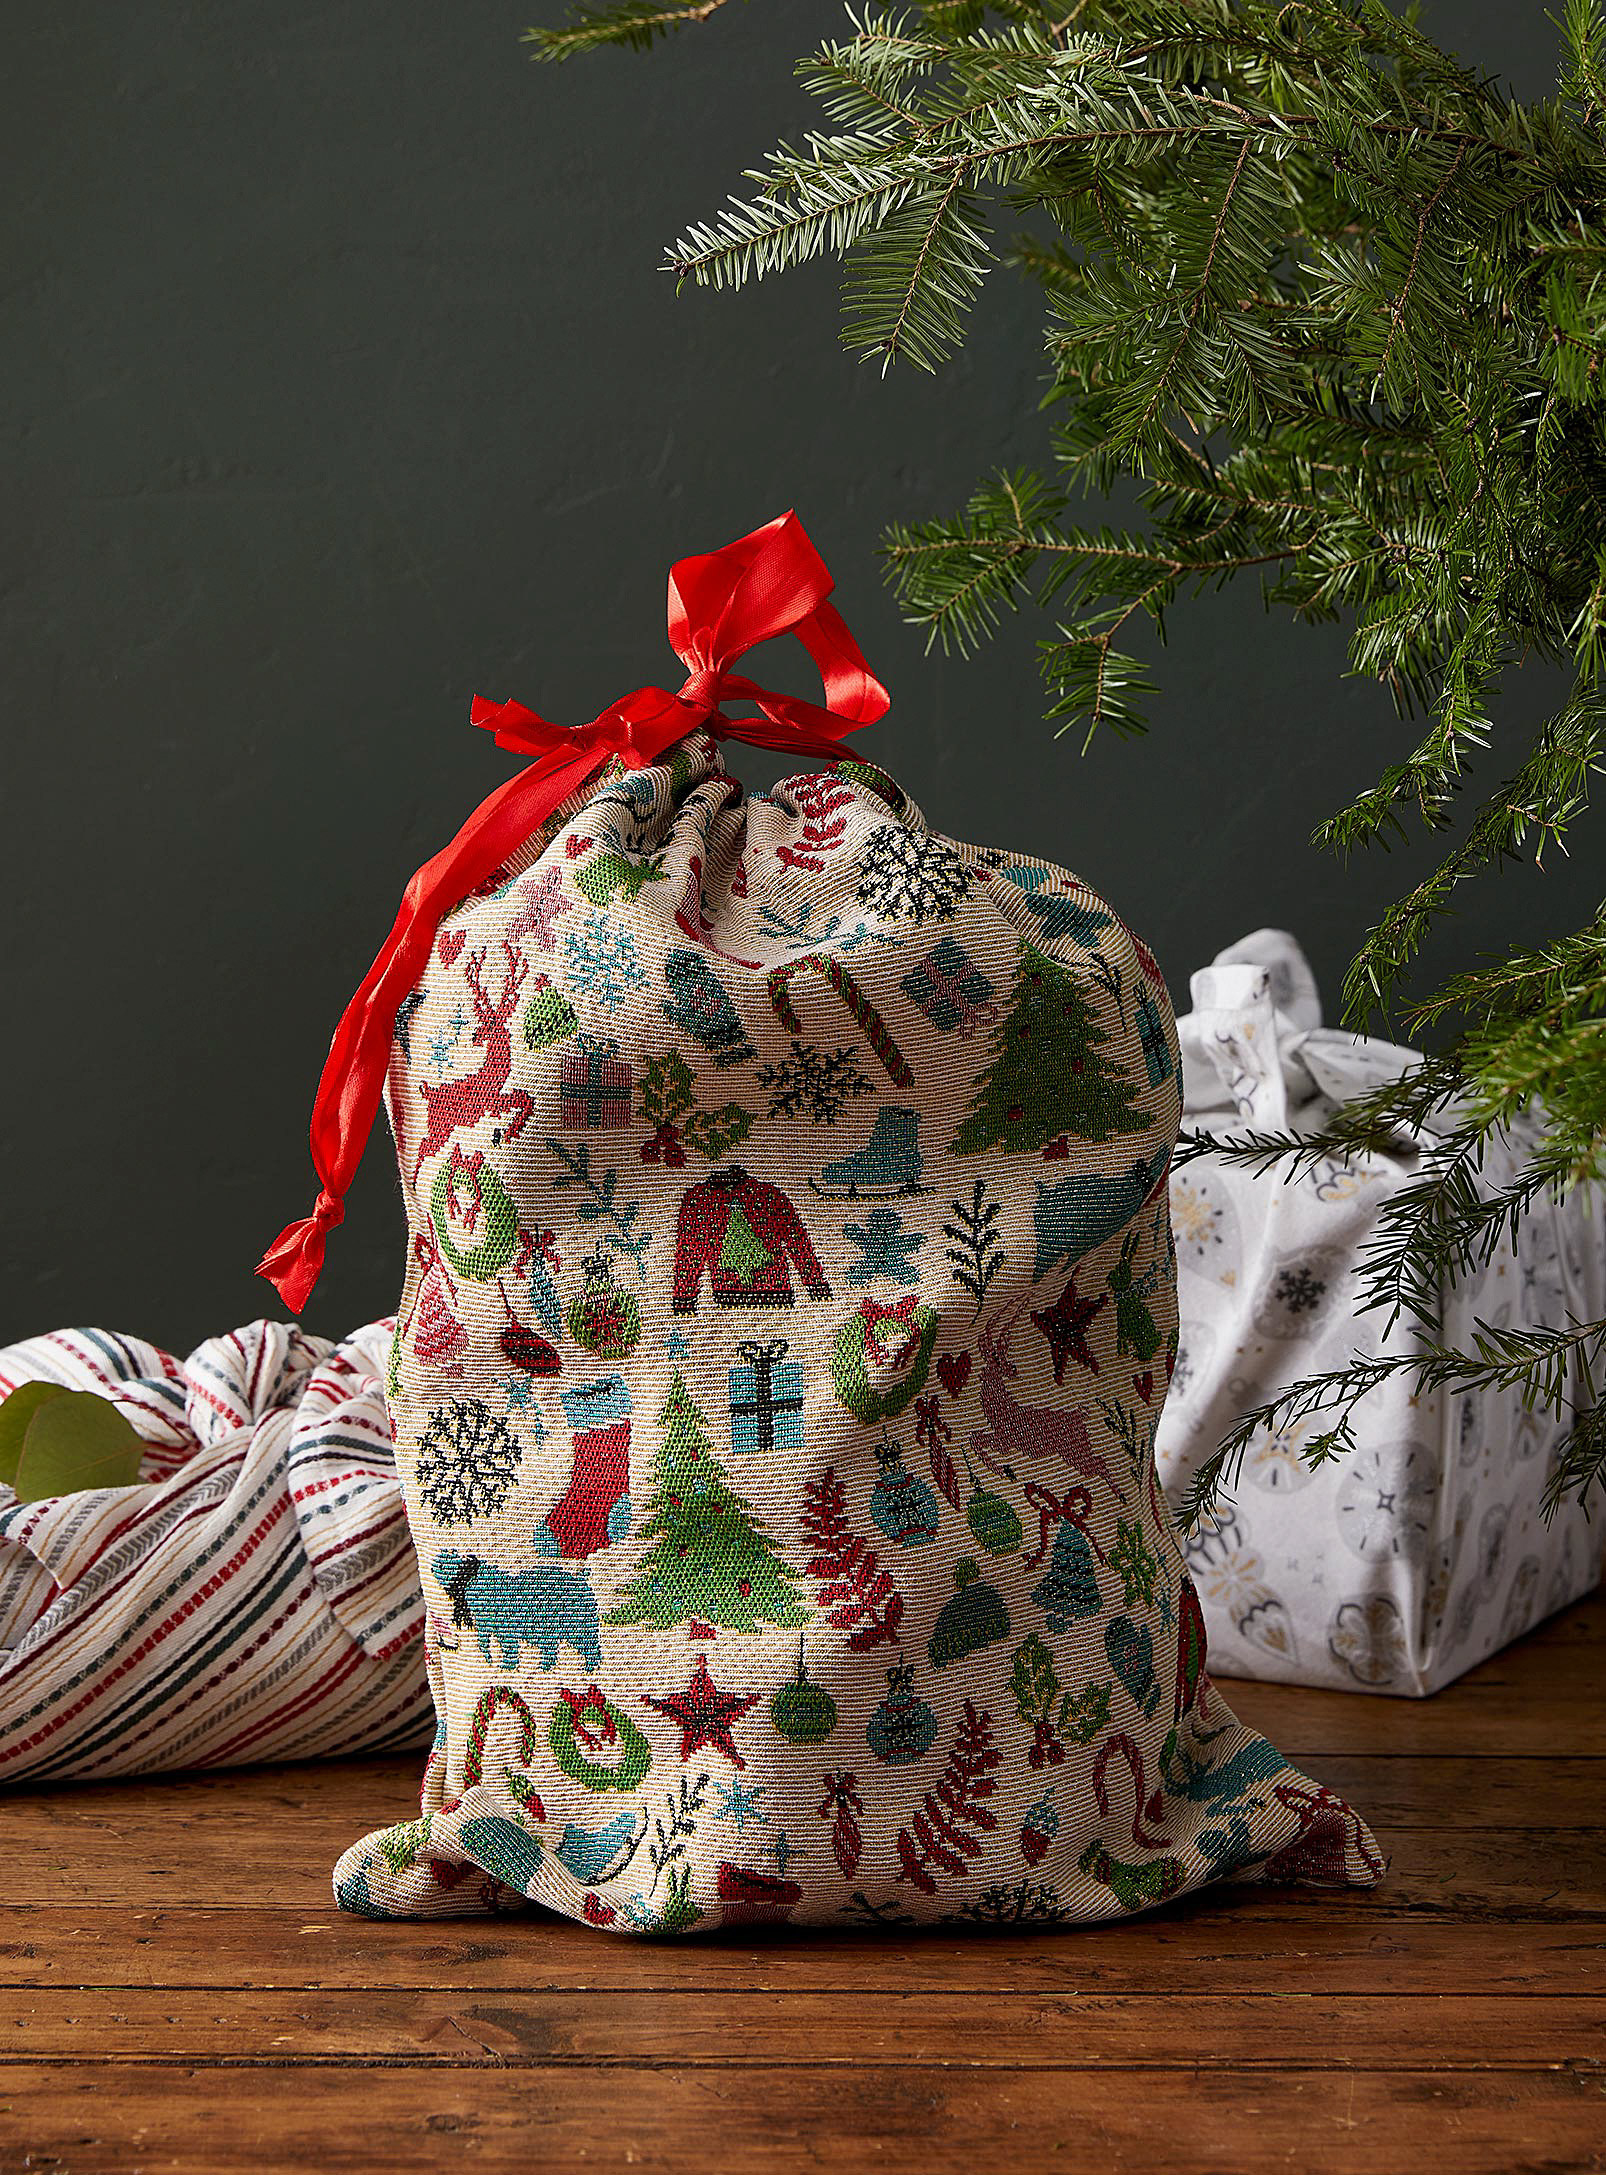 A decorative bag filled with presents